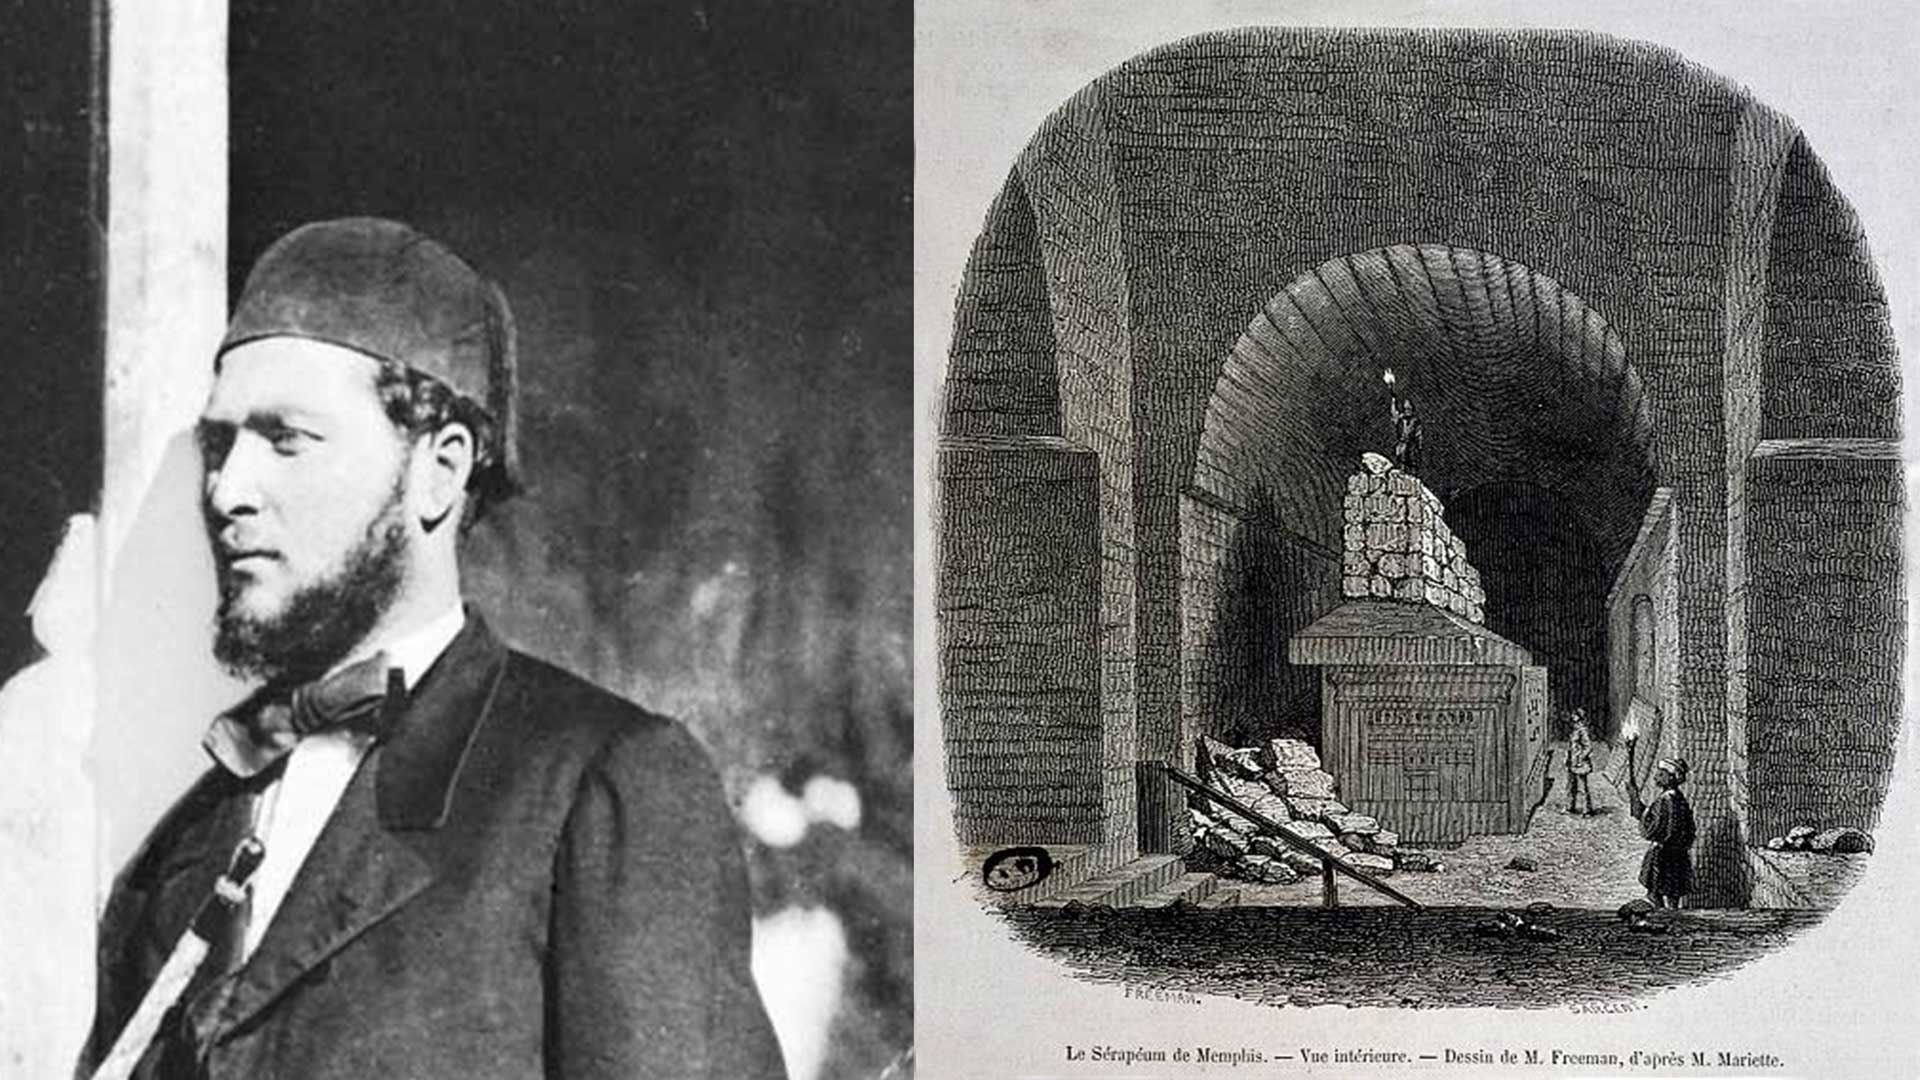 Left: Auguste Mariette. Right: Behind the walls stood the giant sarcophagi (historical drawing)